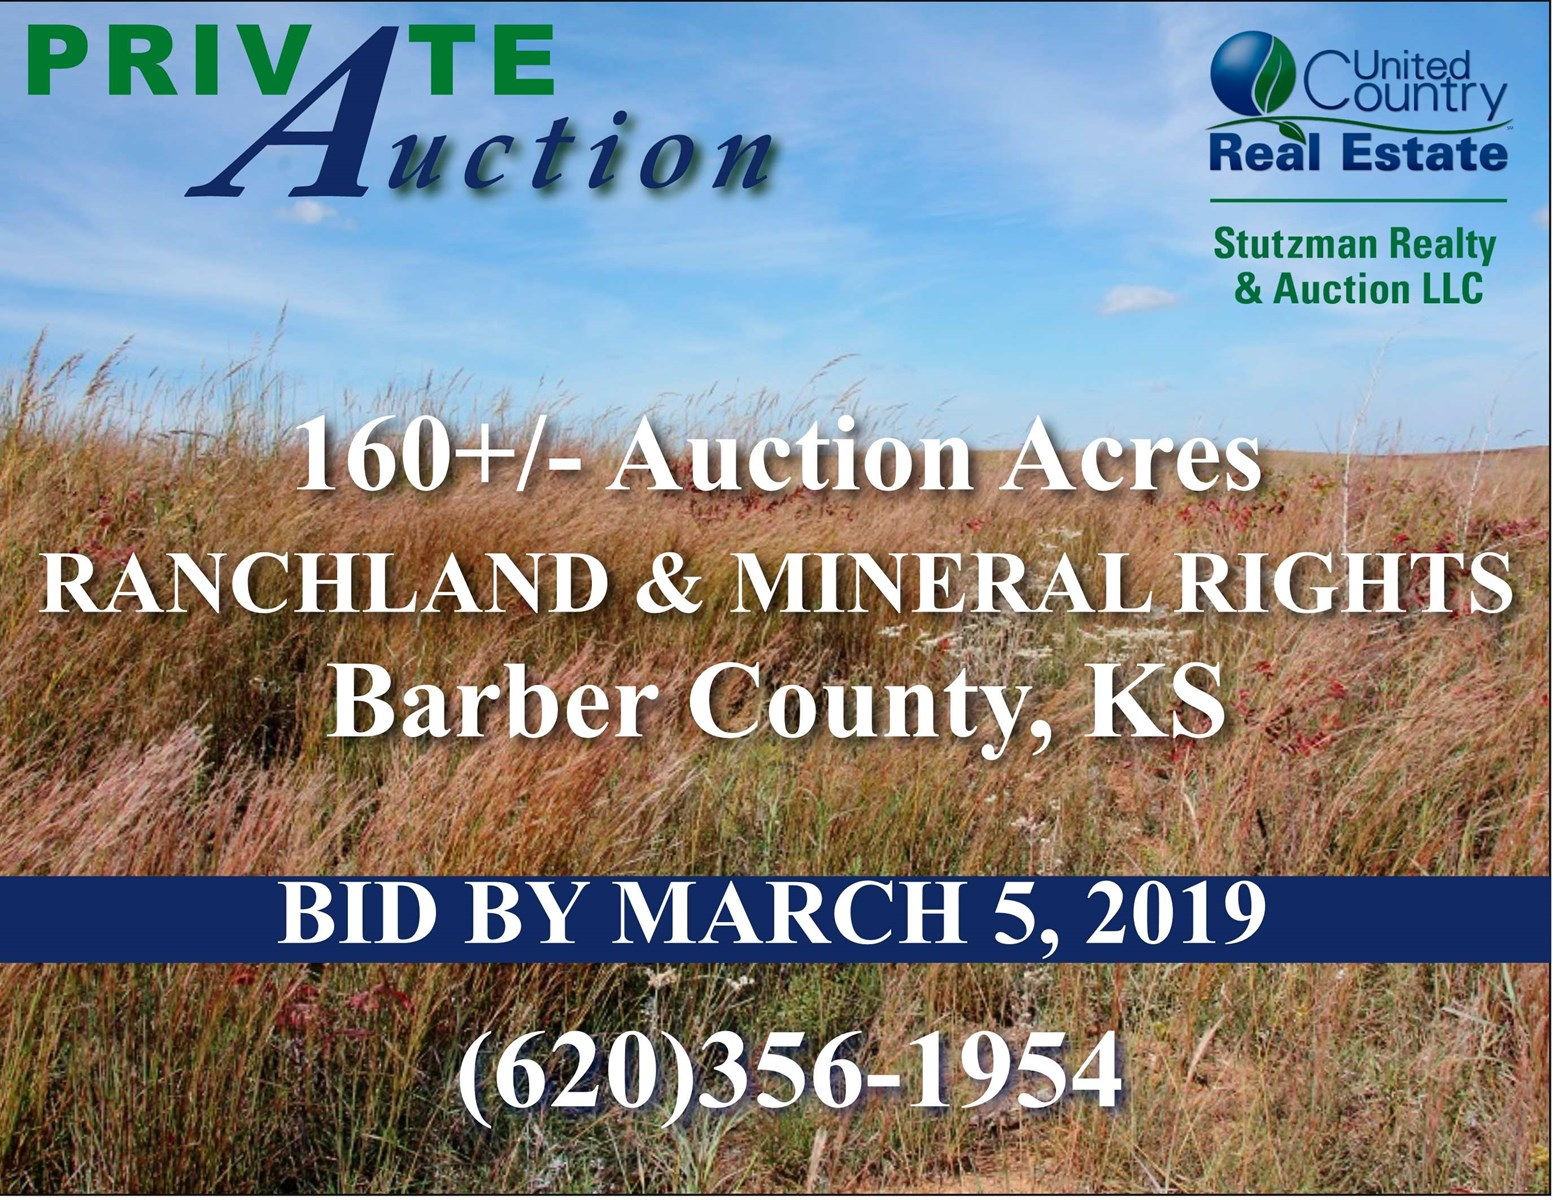 BARBER COUNTY KS - PRIVATE AUCTION - 160+/- ACRES